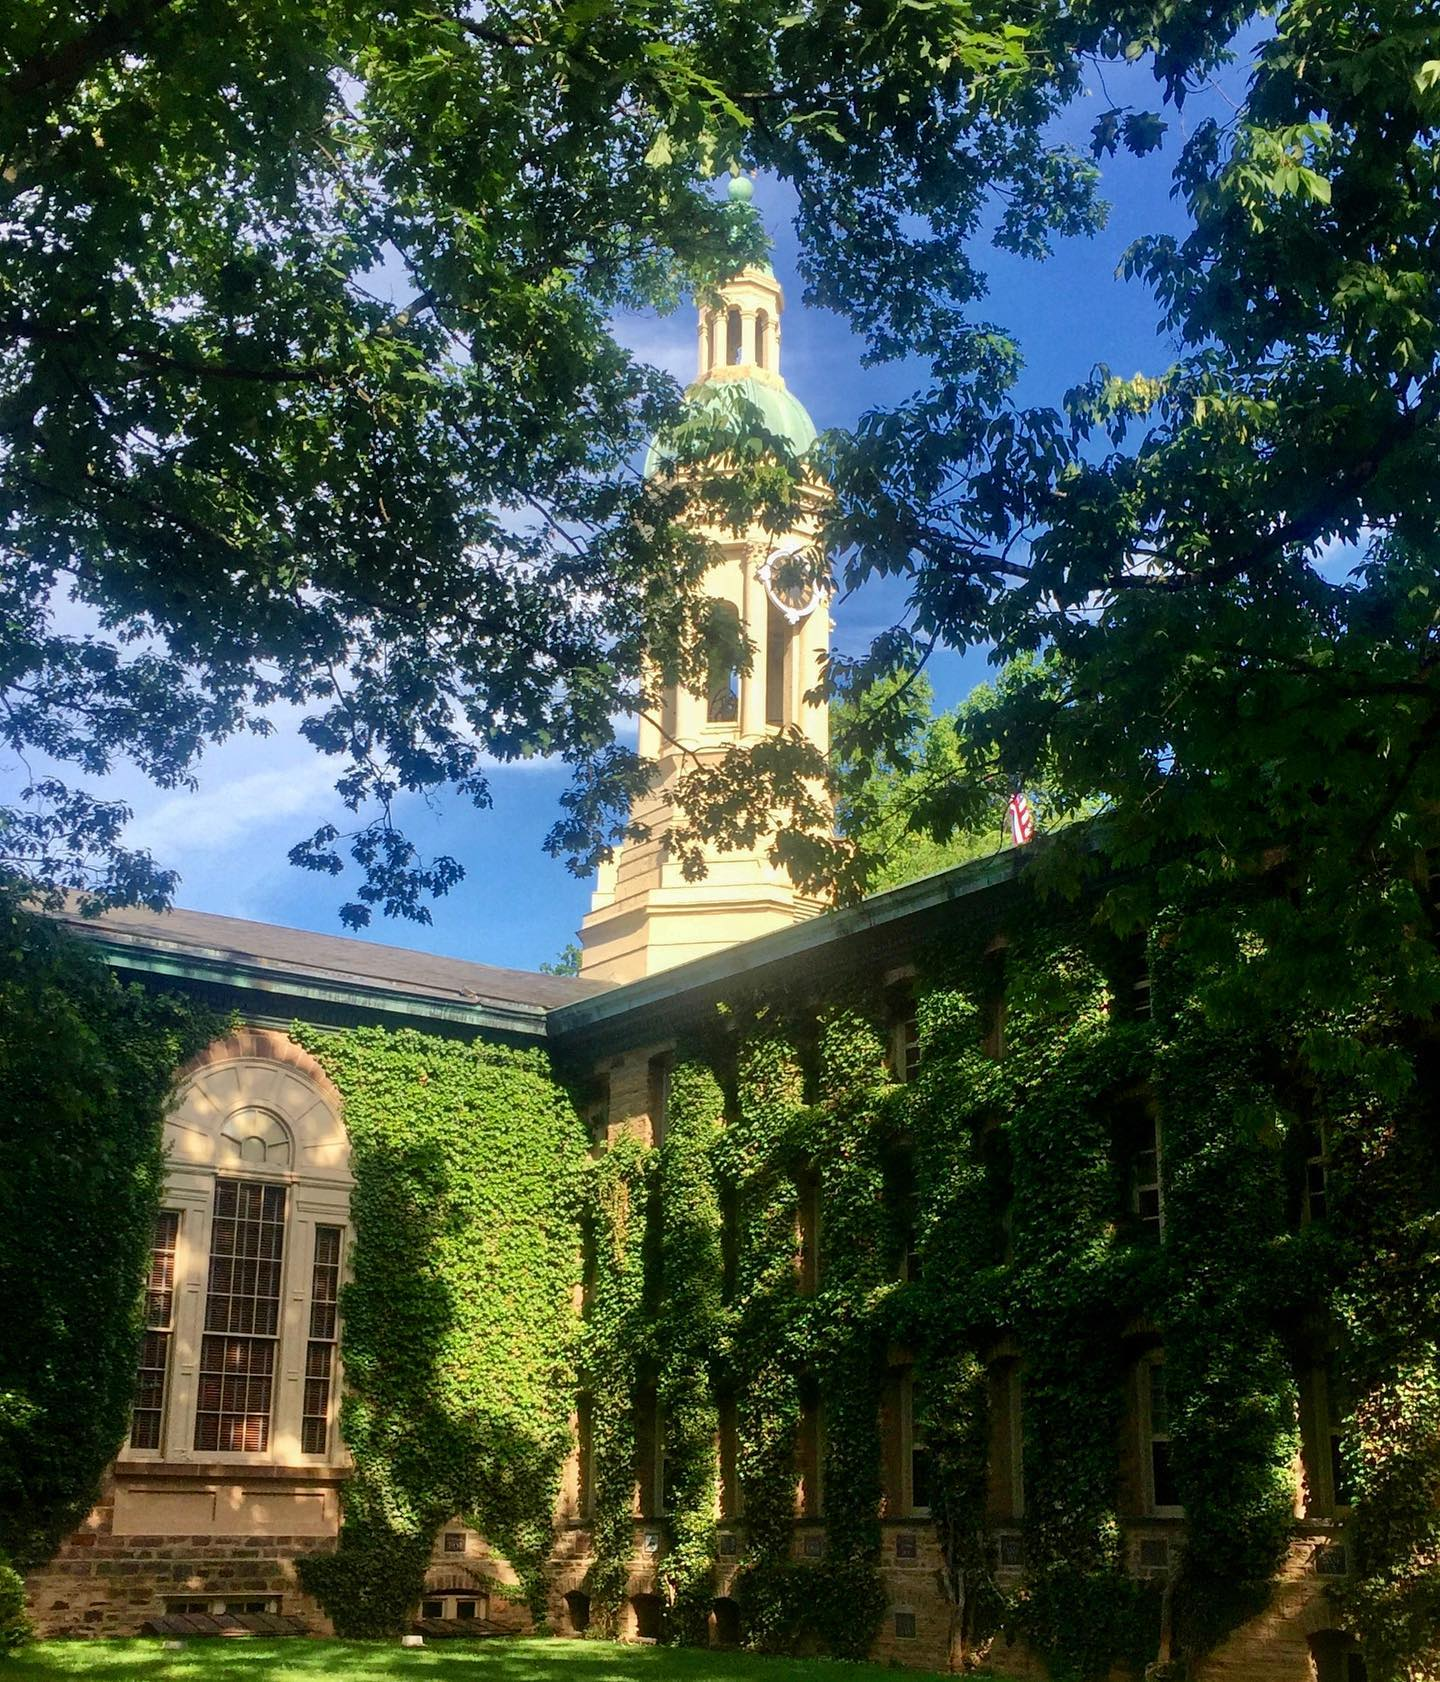 Princeton University, New Jersey Side view of Nassau Hall. Nassau Hall was built in 1756 and is the oldest building at Princeton University. #usa #us #usatravel #usatravels #usareisen #usareise #usatrip #newjersey #princeton #princetonuniversity #ivy #eastcoast #nassauhall #princetonnj #travelingtheusa🇺🇸 #travelgram #travelphotography #reisephotographie #reiseblog #reiseblogger #reiseblogger_de #travelblog #travelblogger